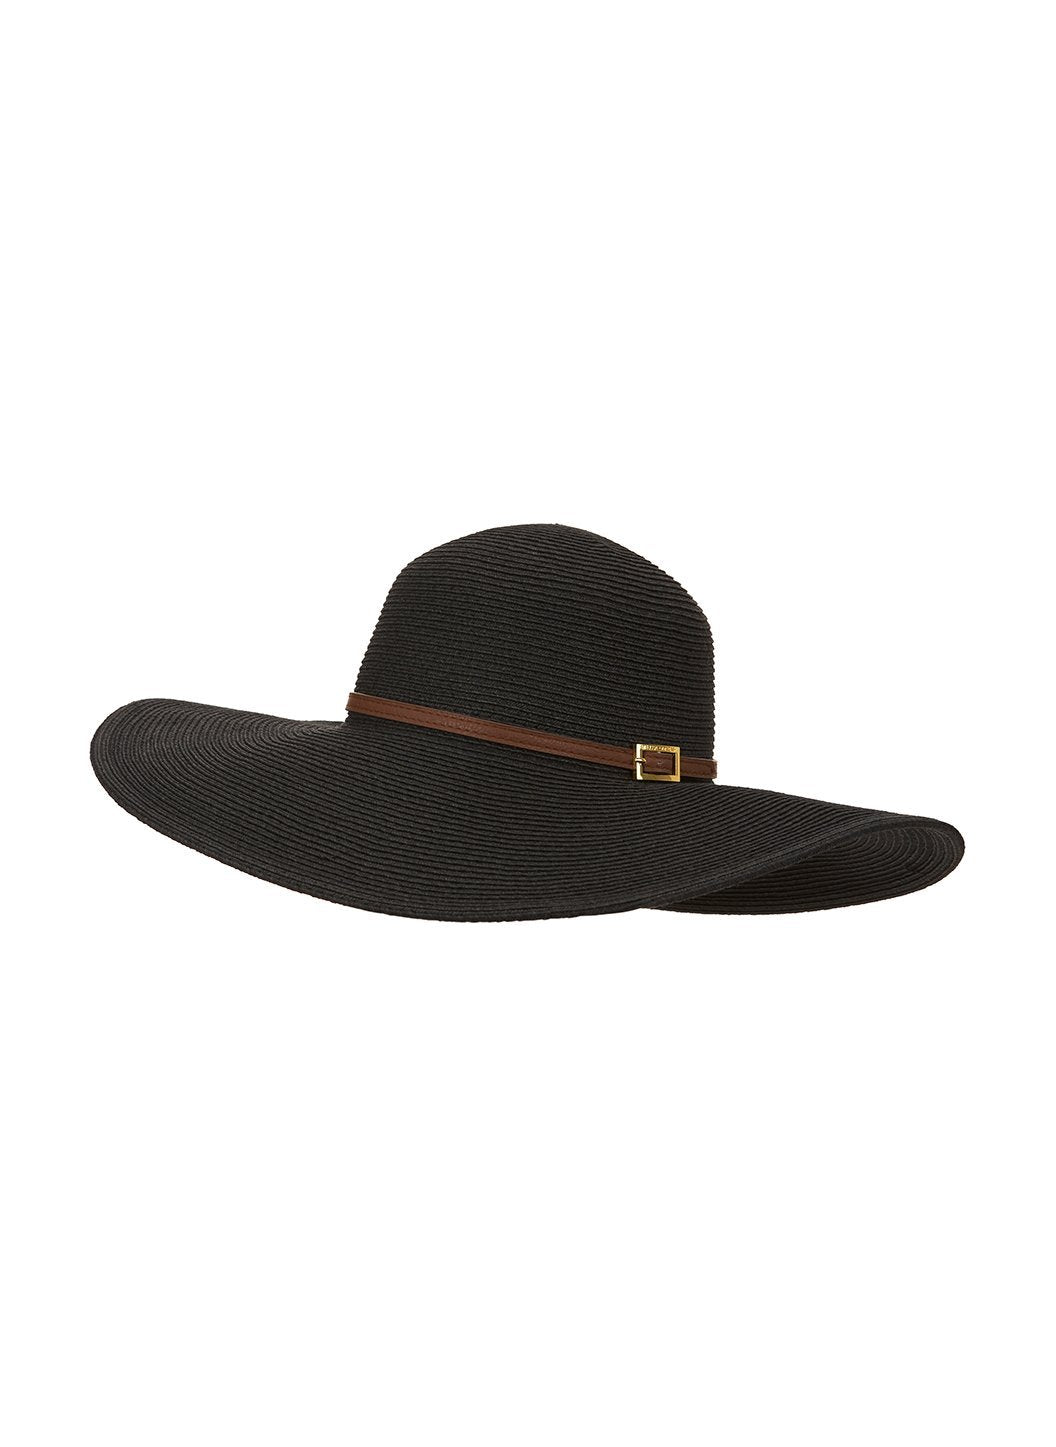 jemima hat black